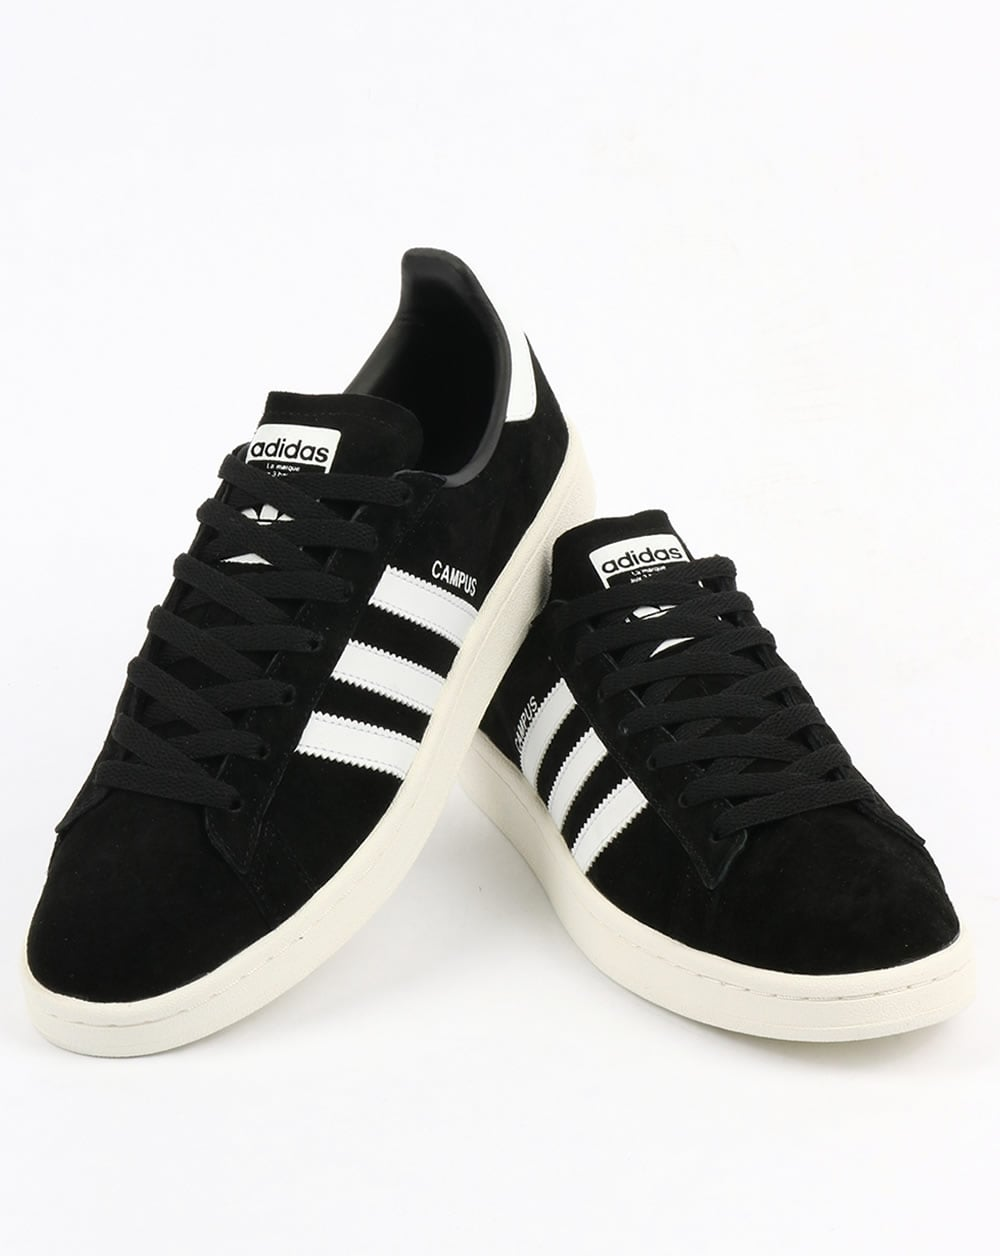 b12421df429 adidas campus 80s archive edition sneaker